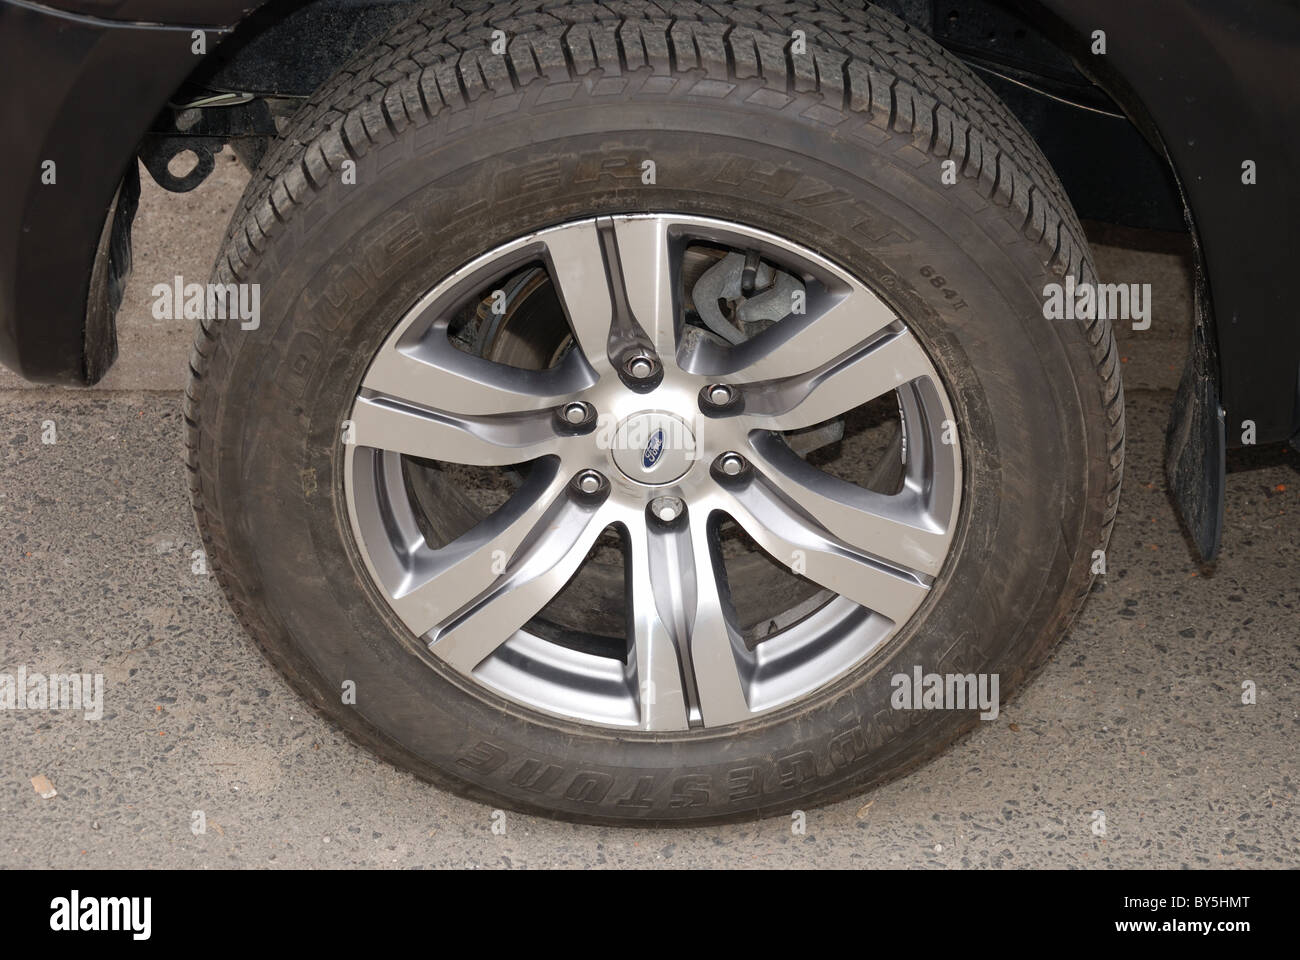 alloy wheels stock photos alloy wheels stock images alamy. Black Bedroom Furniture Sets. Home Design Ideas